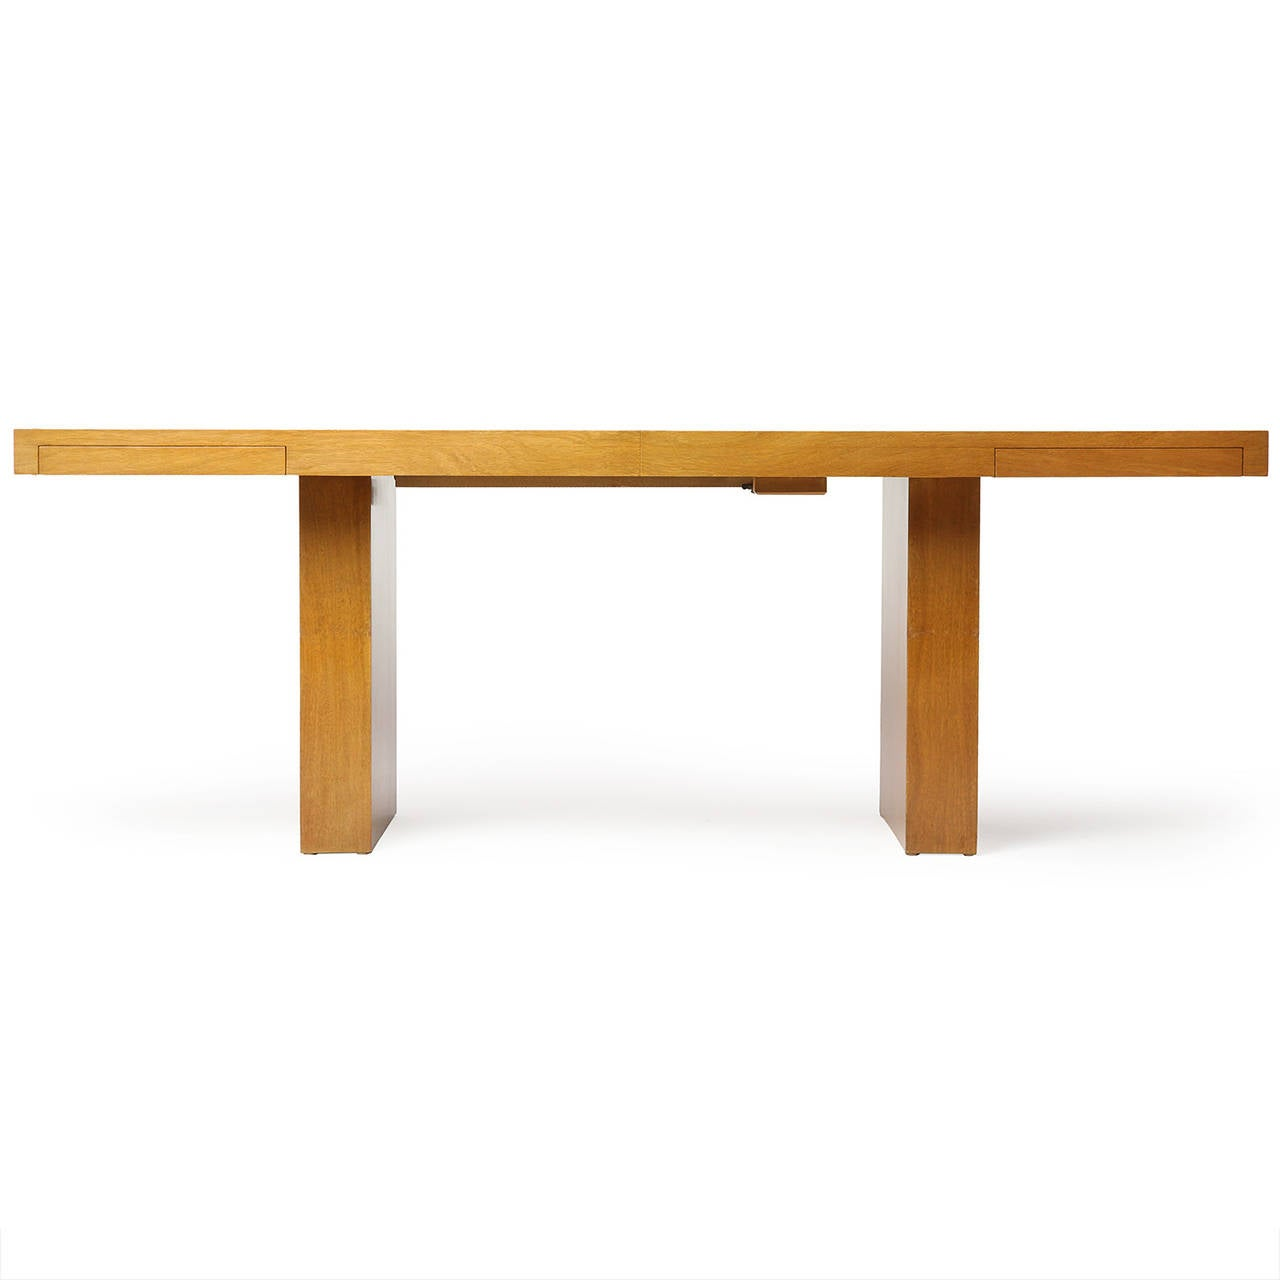 Minimalist Dining Table by Edward Wormley For Sale at 1stdibs : 2l from www.1stdibs.com size 1280 x 1280 jpeg 38kB